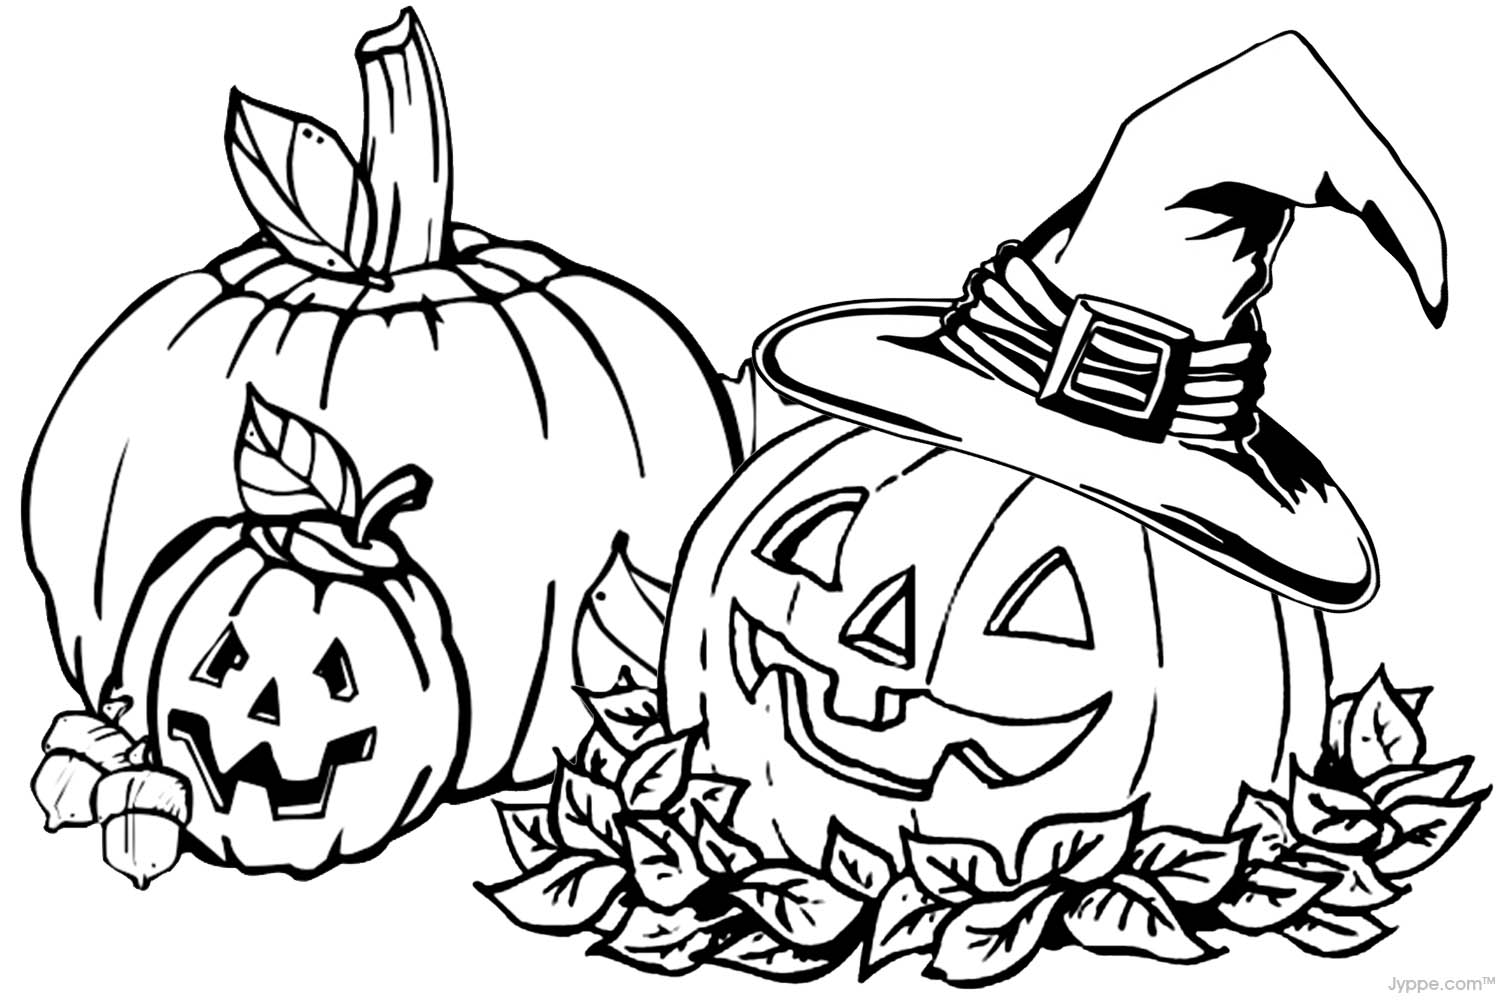 Halloween Pumpkin Coloring Pages Festival Collections New Glum Me